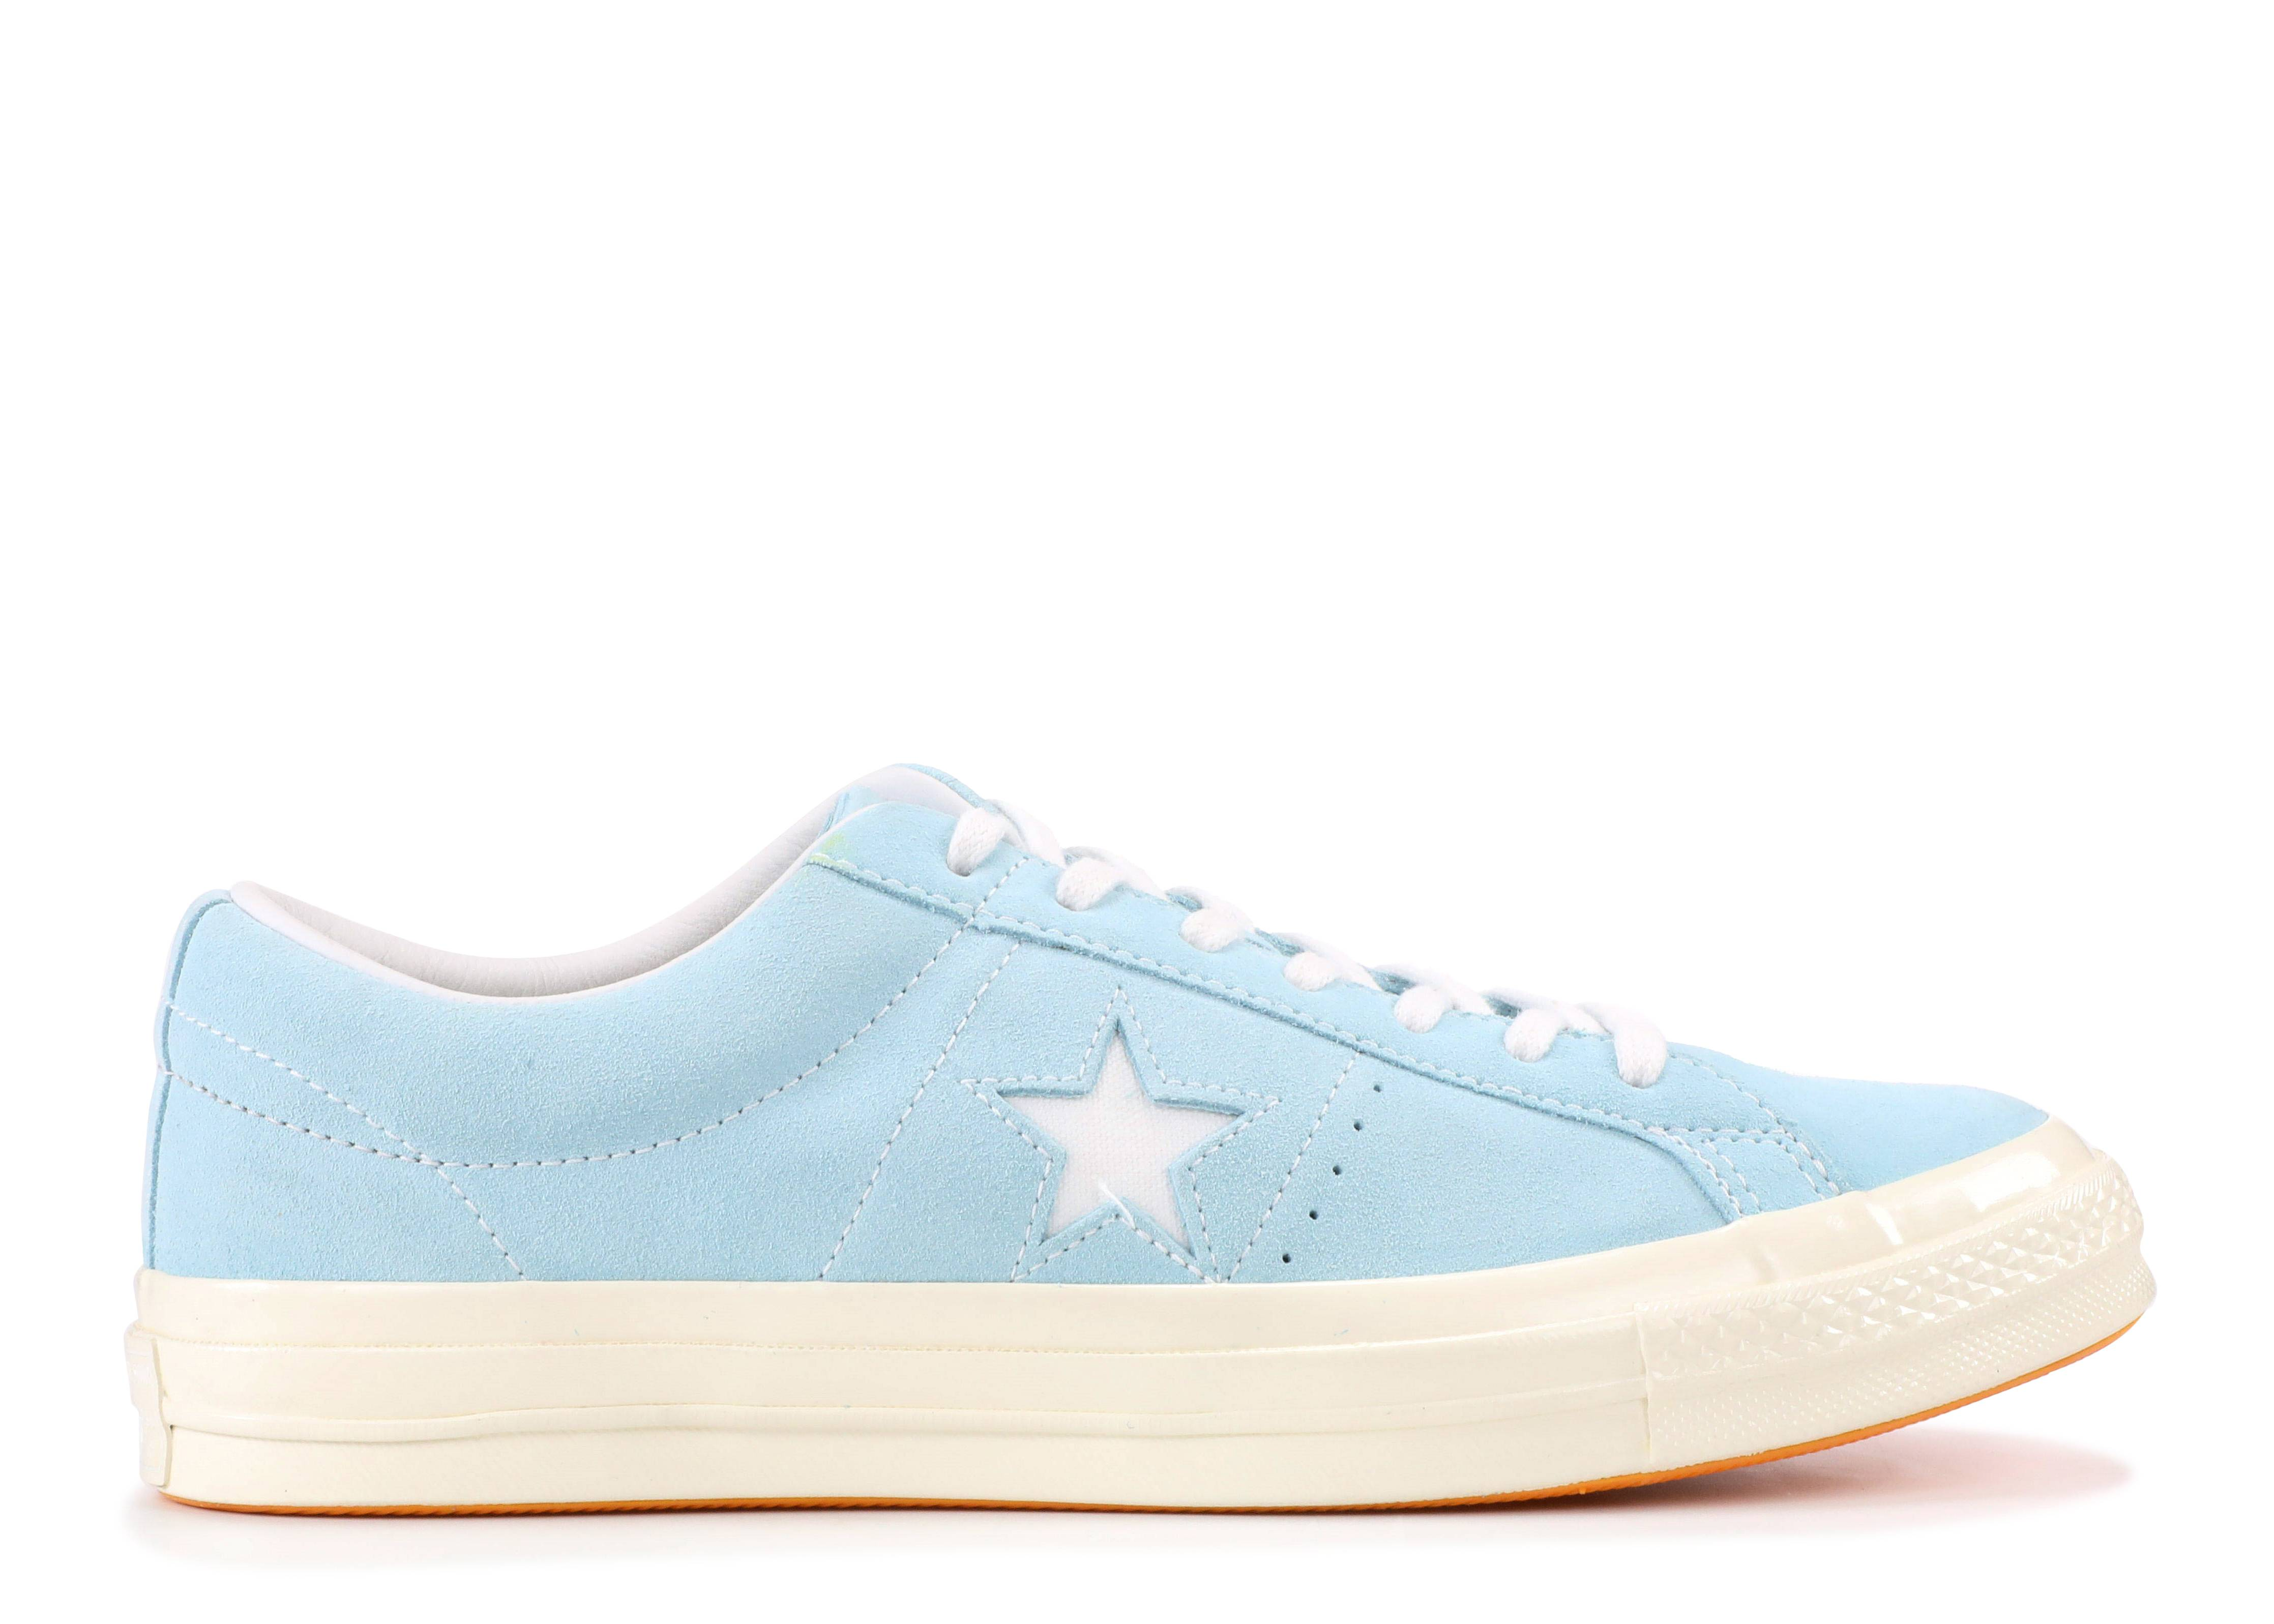 Golf Le Fleur X One Star Ox Clearwater Converse 160111c Clearwater White Flight Club